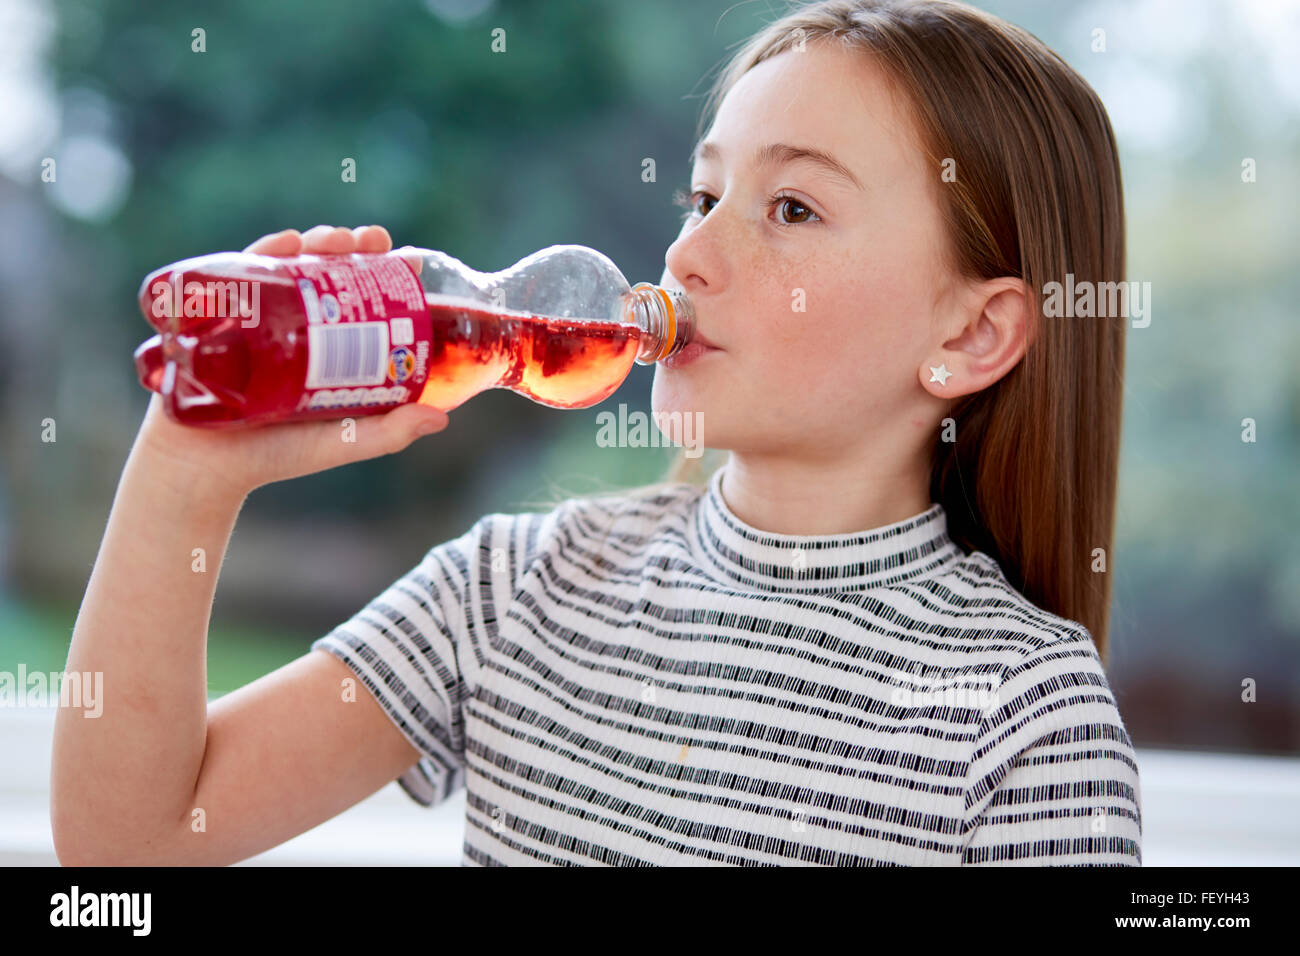 Young girl drinking fizzy drink - Stock Image